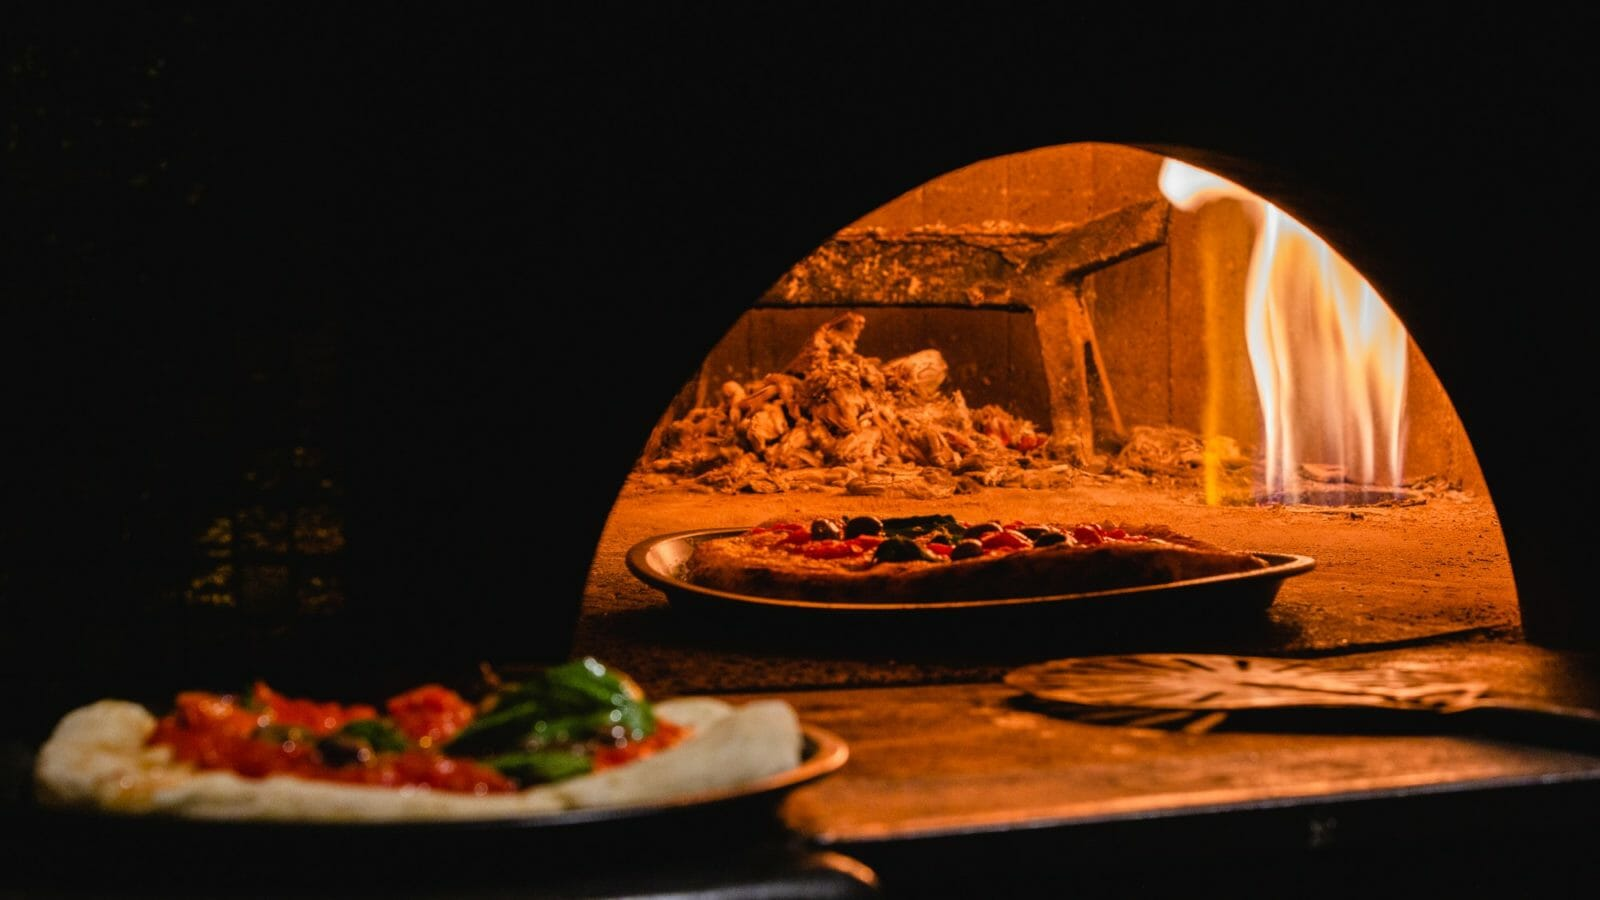 The Bangkok pizzerias that made it onto the 2021 50 Top Pizzas in Asia list